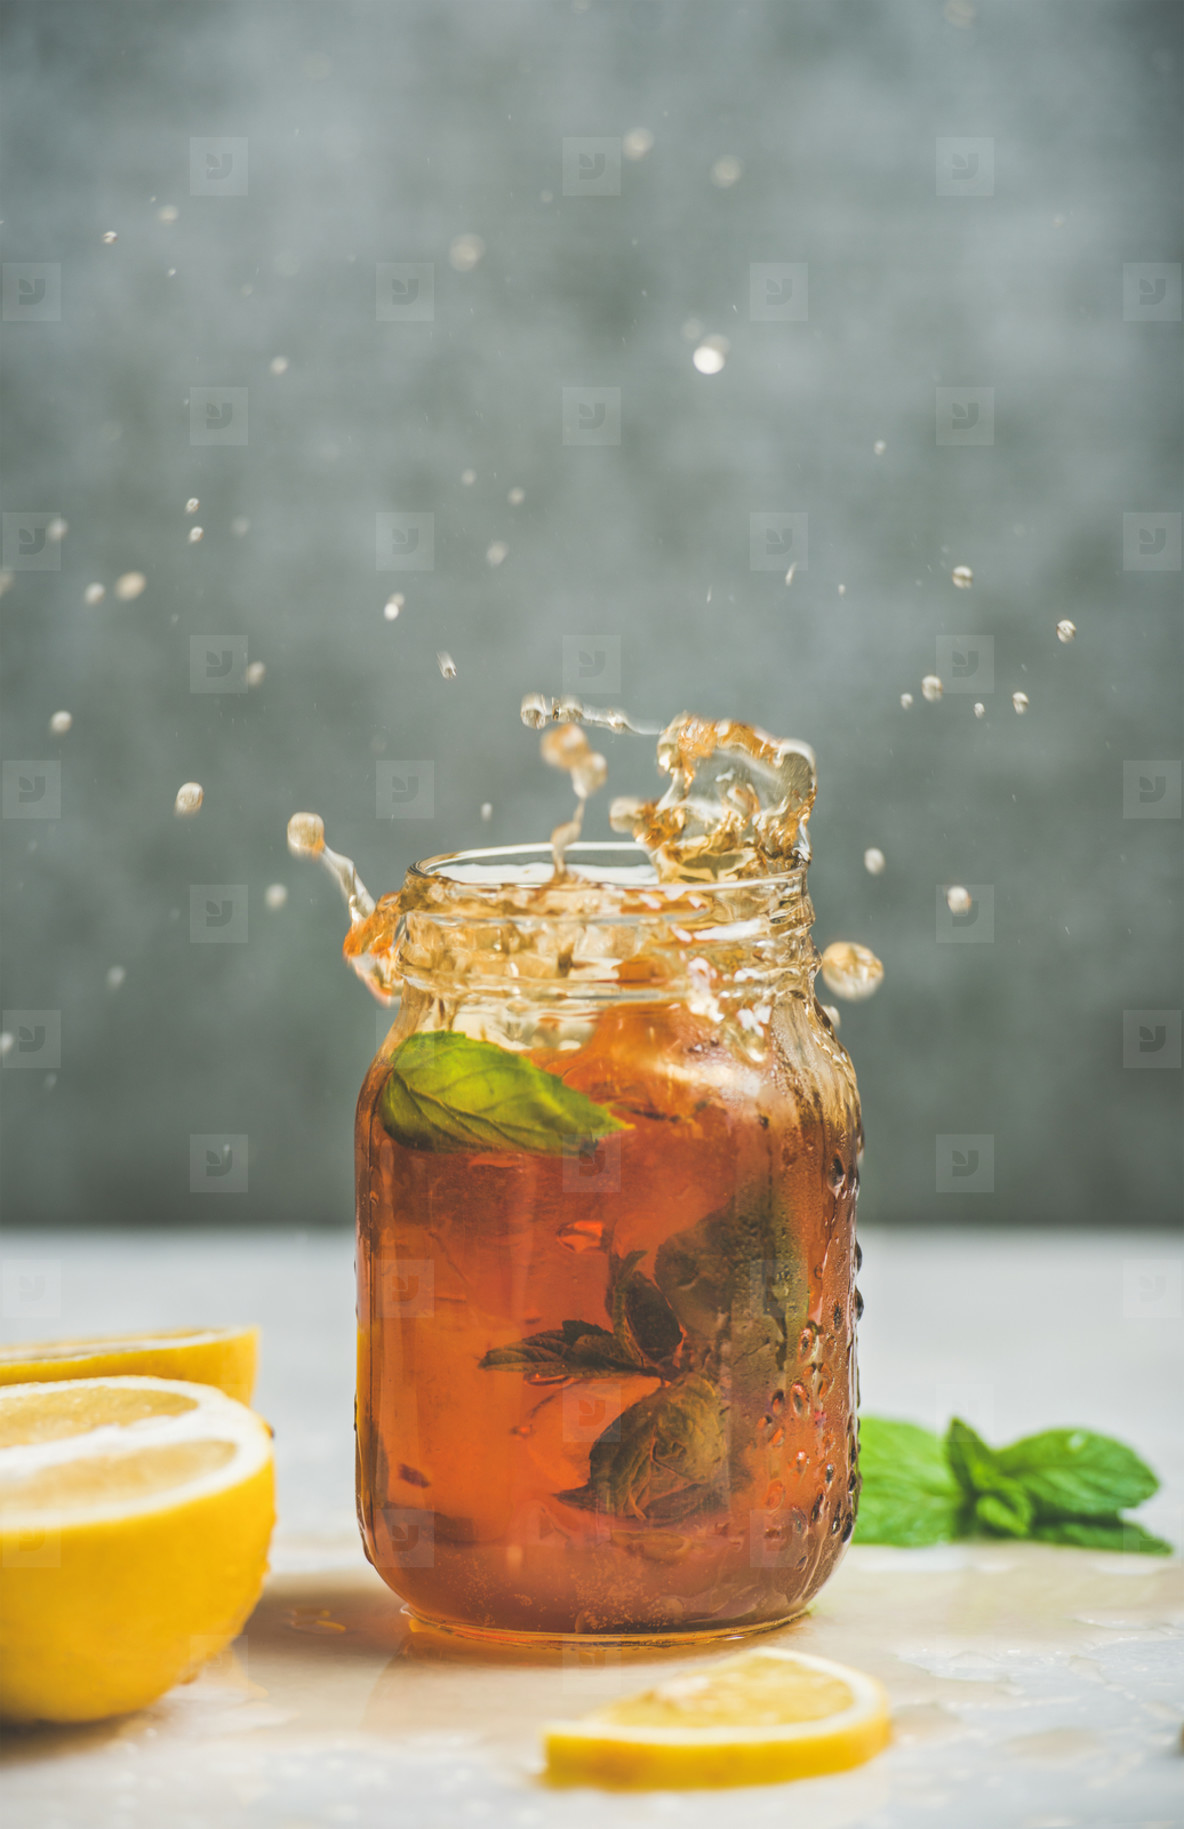 Iced tea with bergamot  lemon  mint in jar with splashes